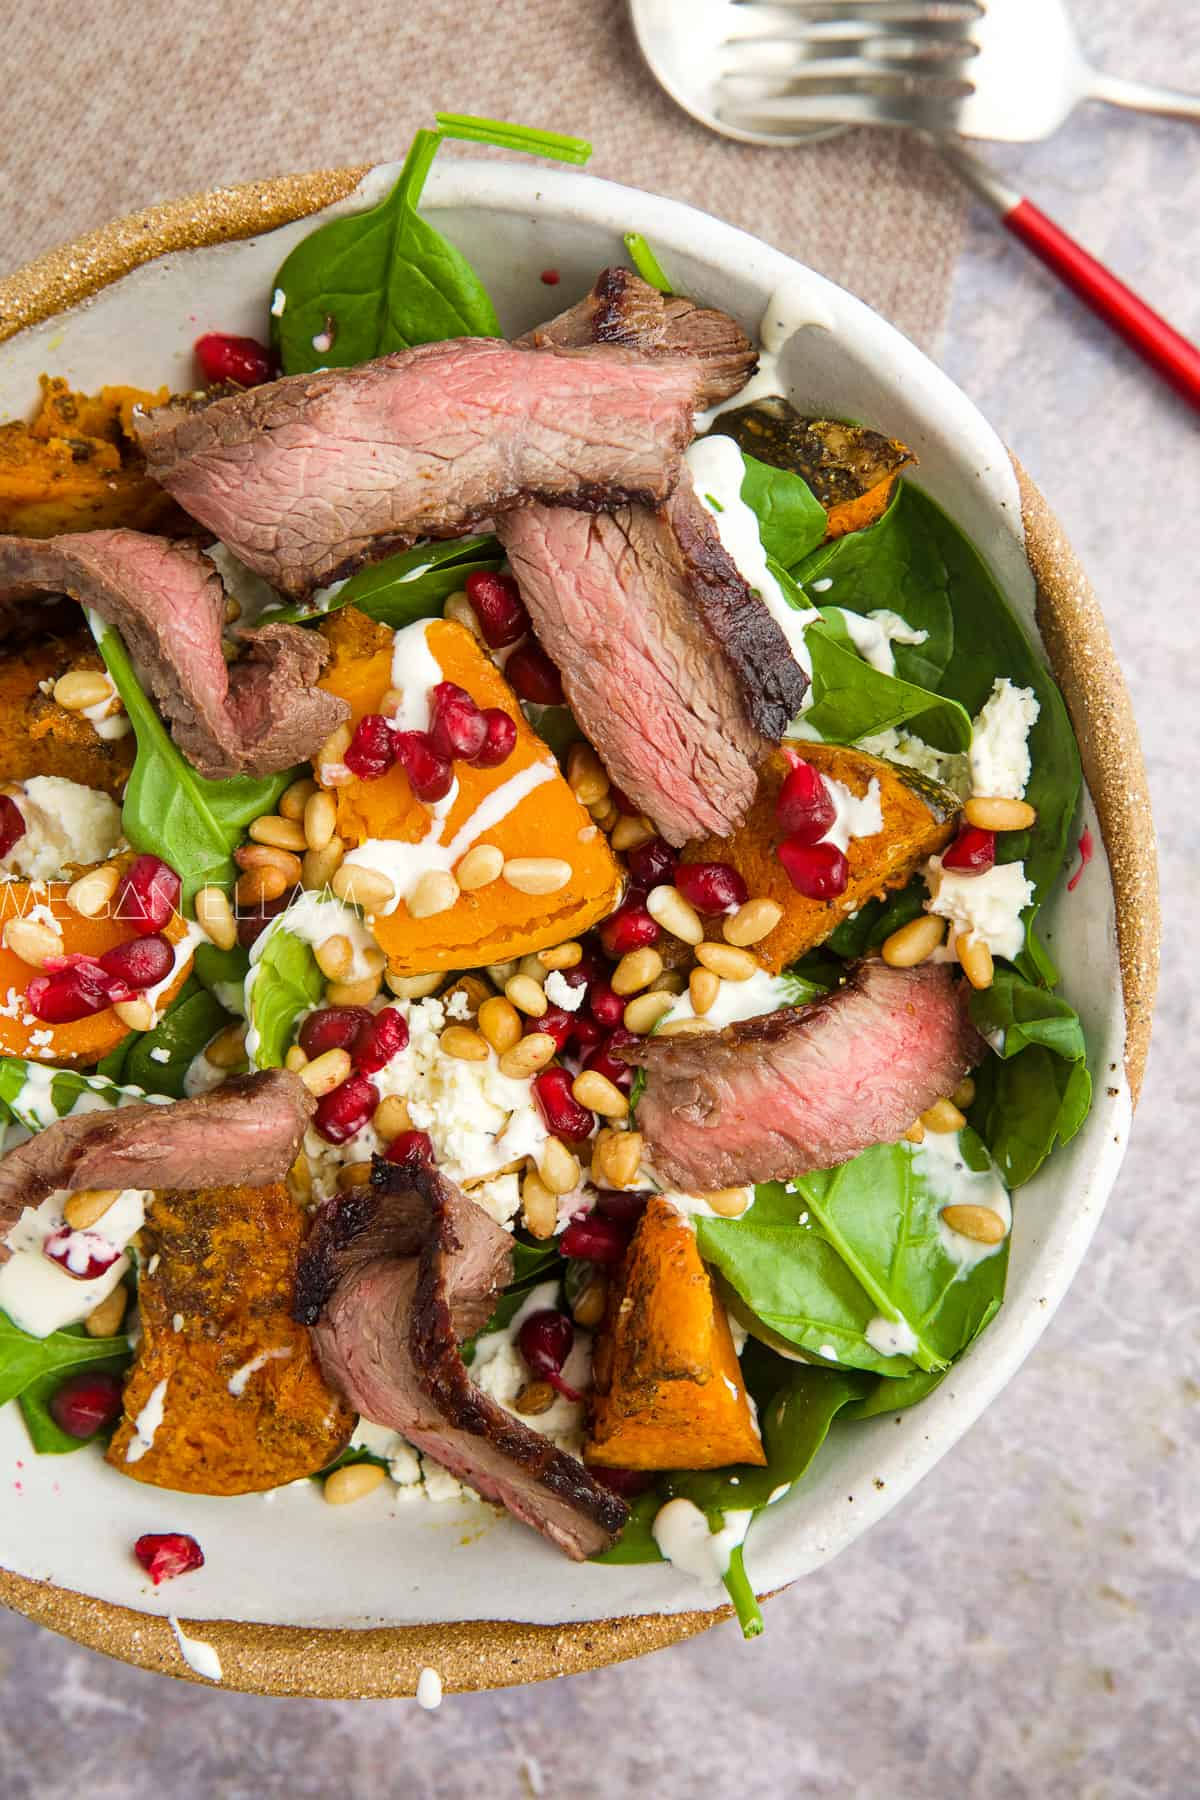 Beef salad in a bowl.